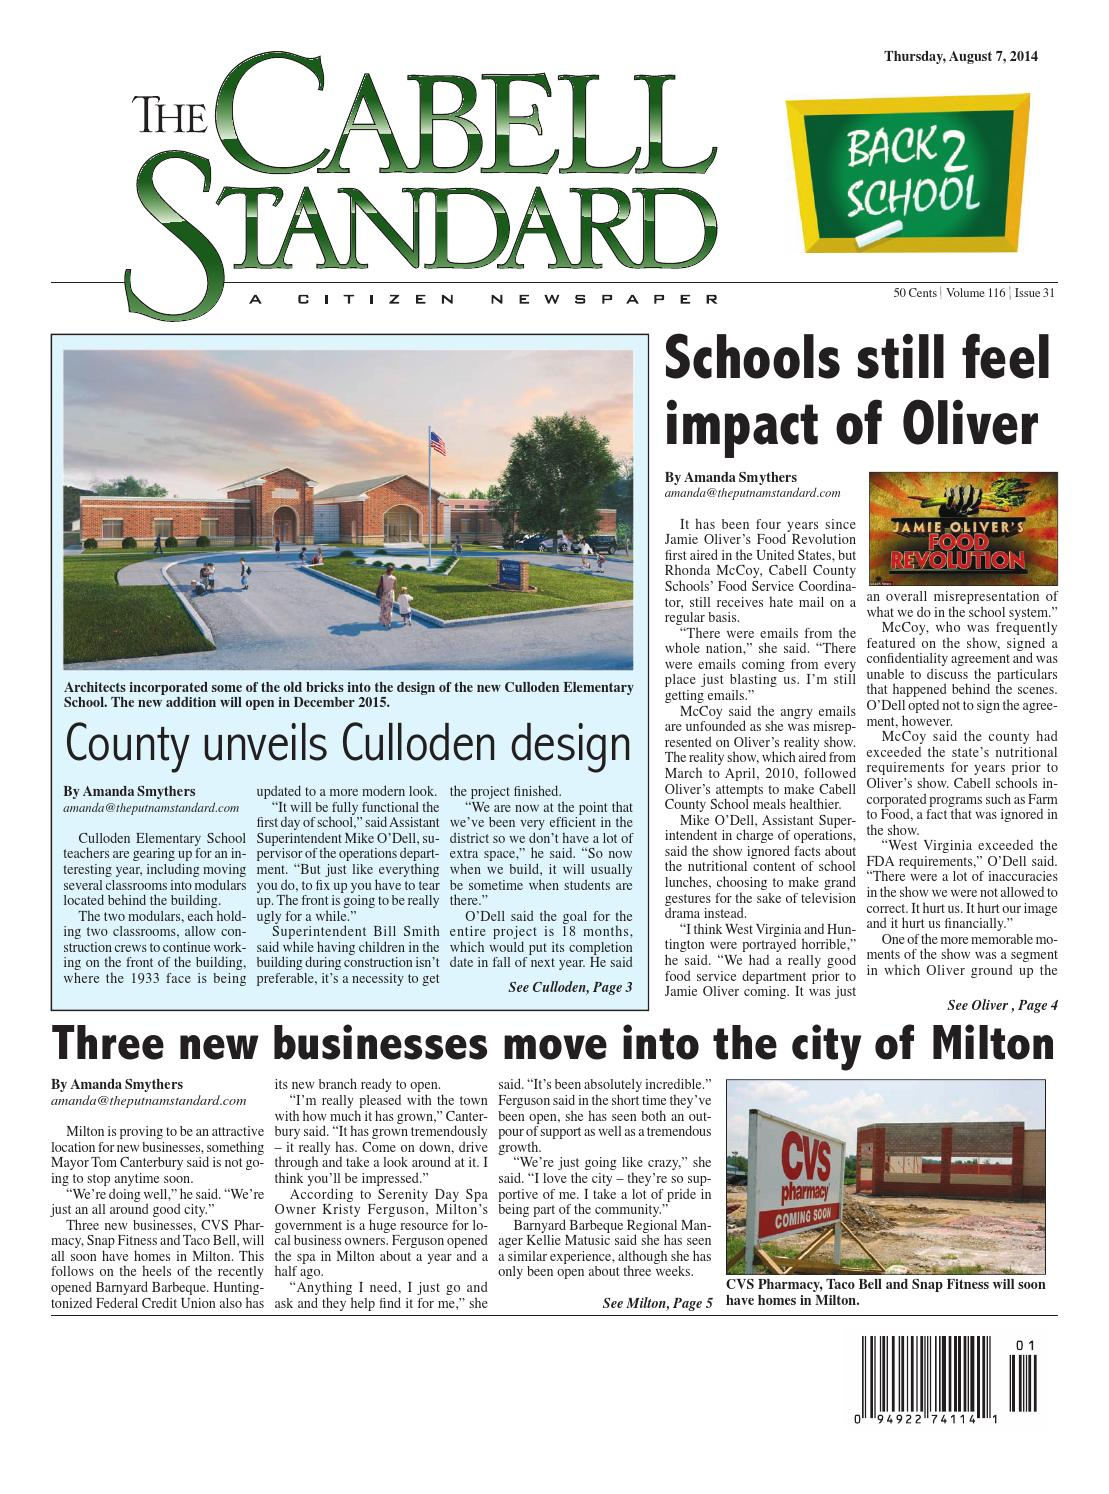 The Cabell Standard, August 7, 2014 by PC Newspapers - issuu